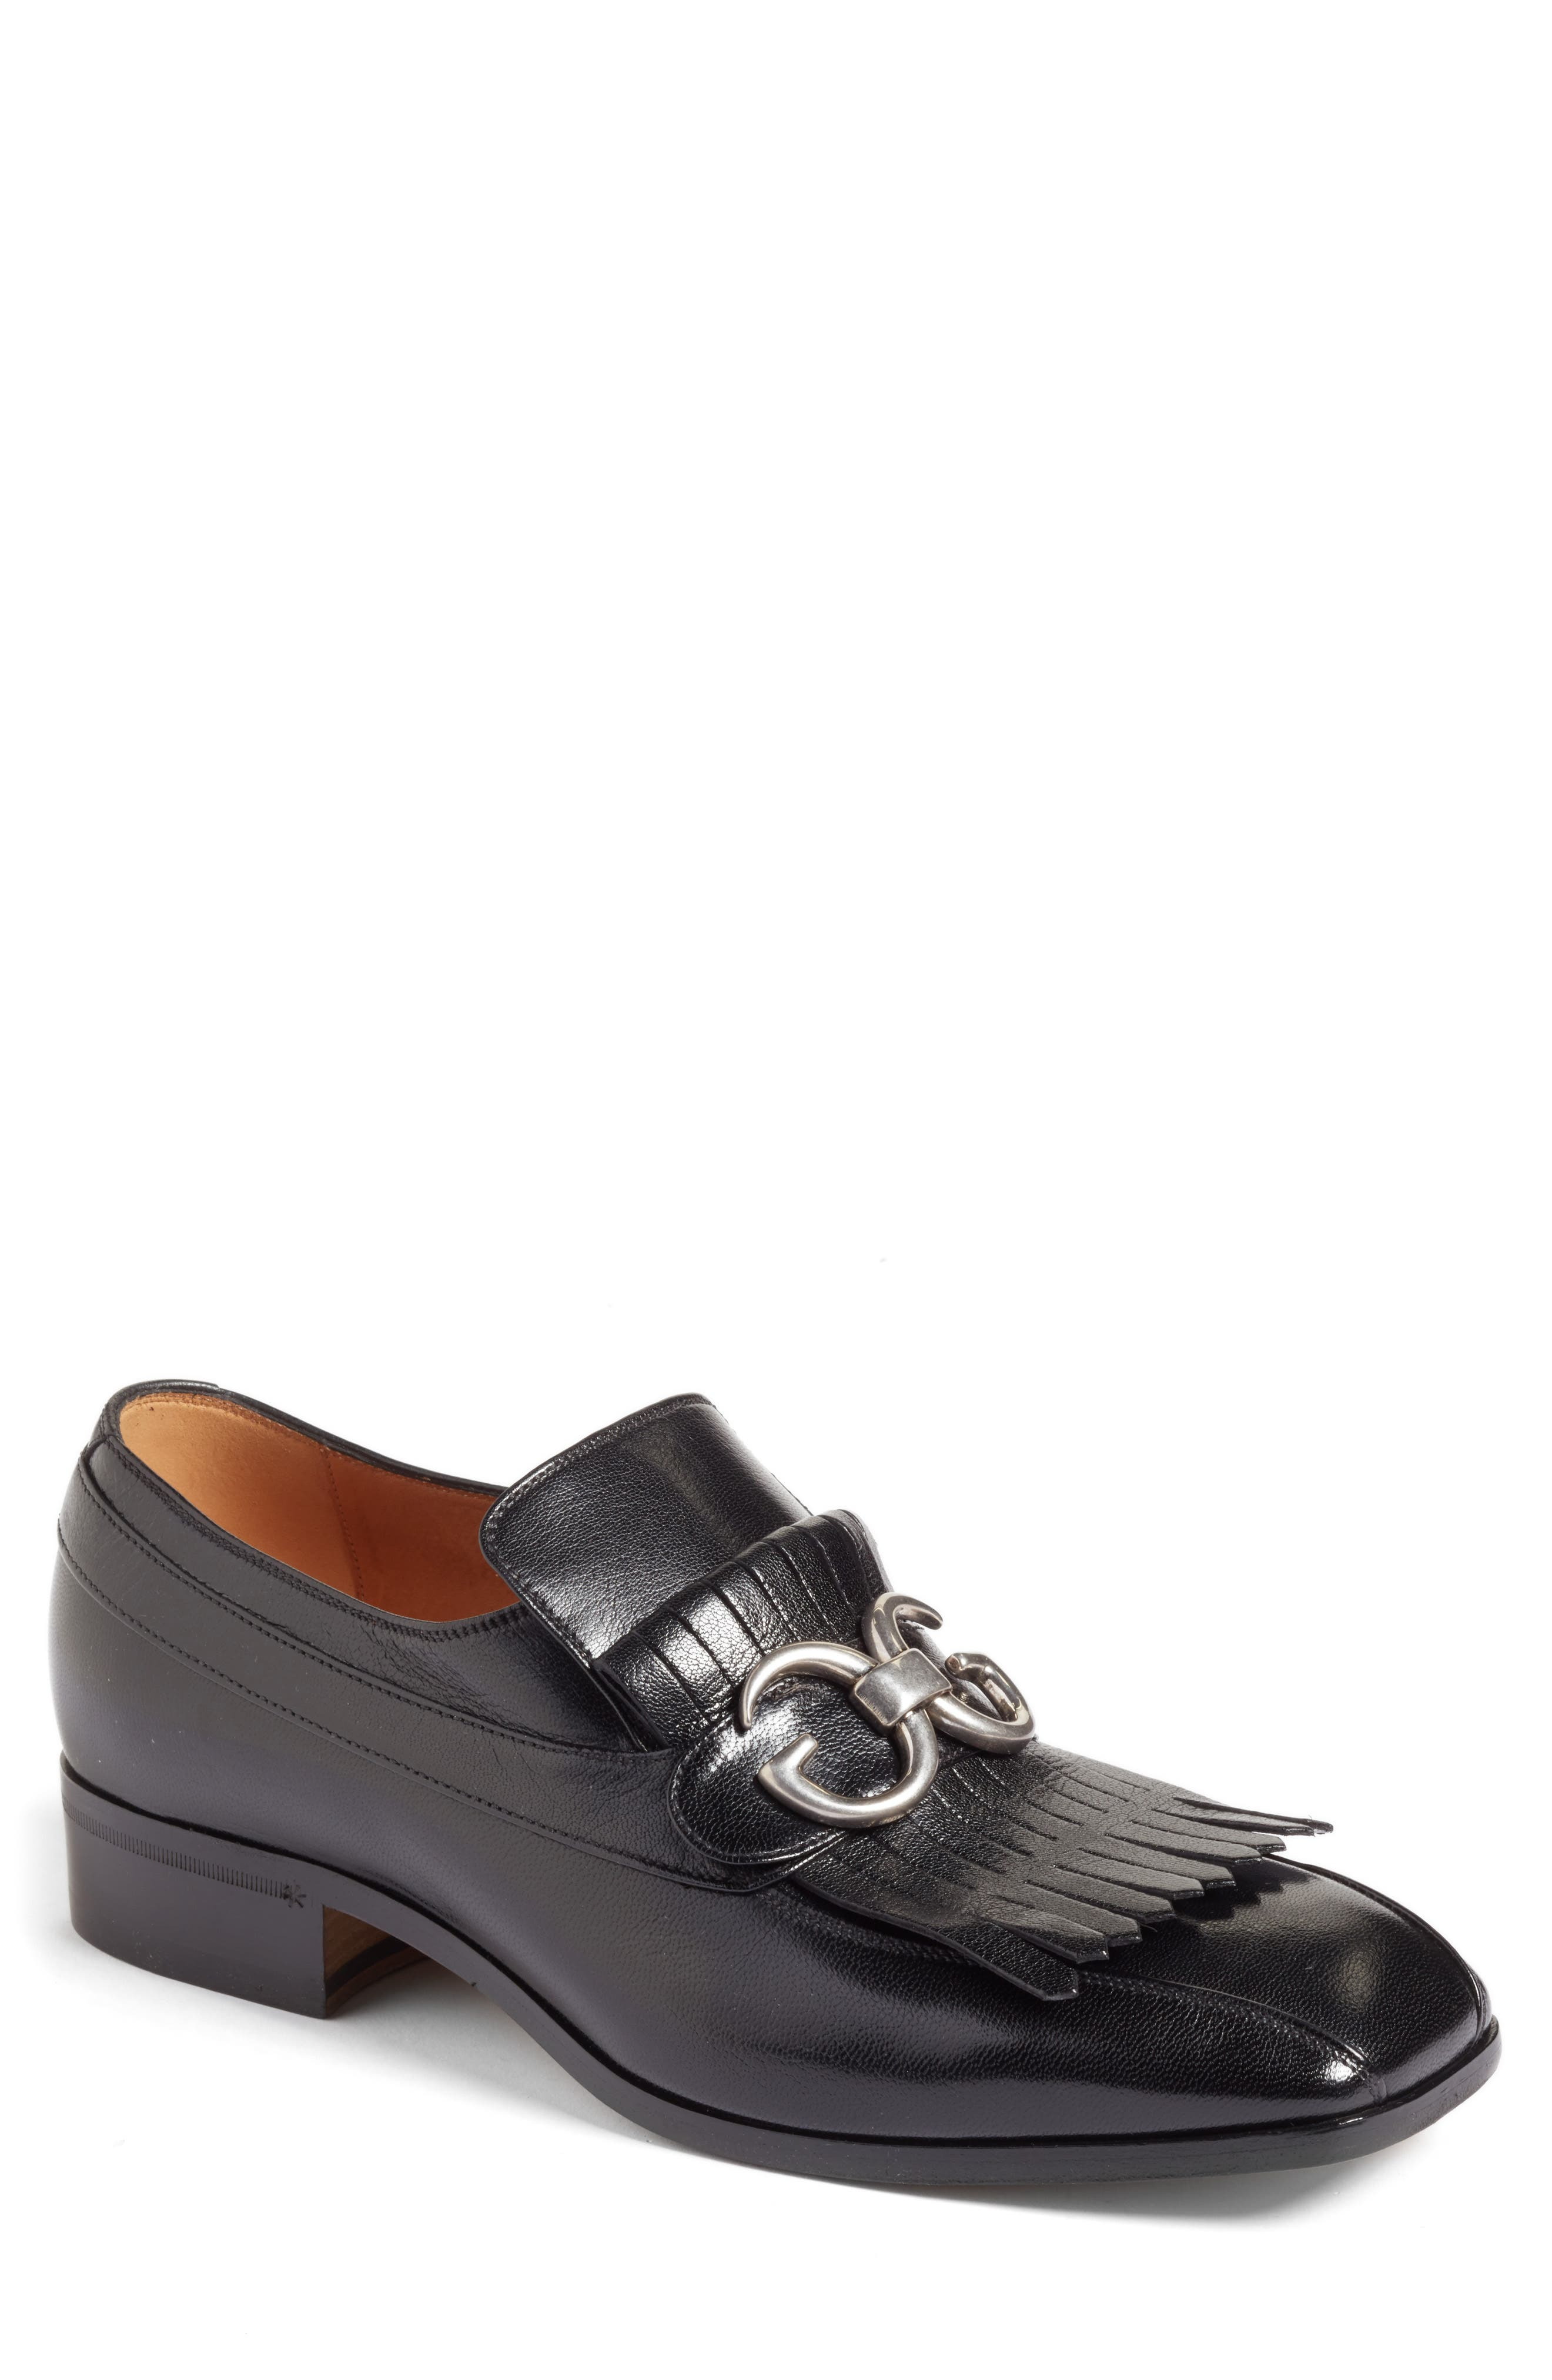 GUCCI Novel Marmont Kiltie Loafer